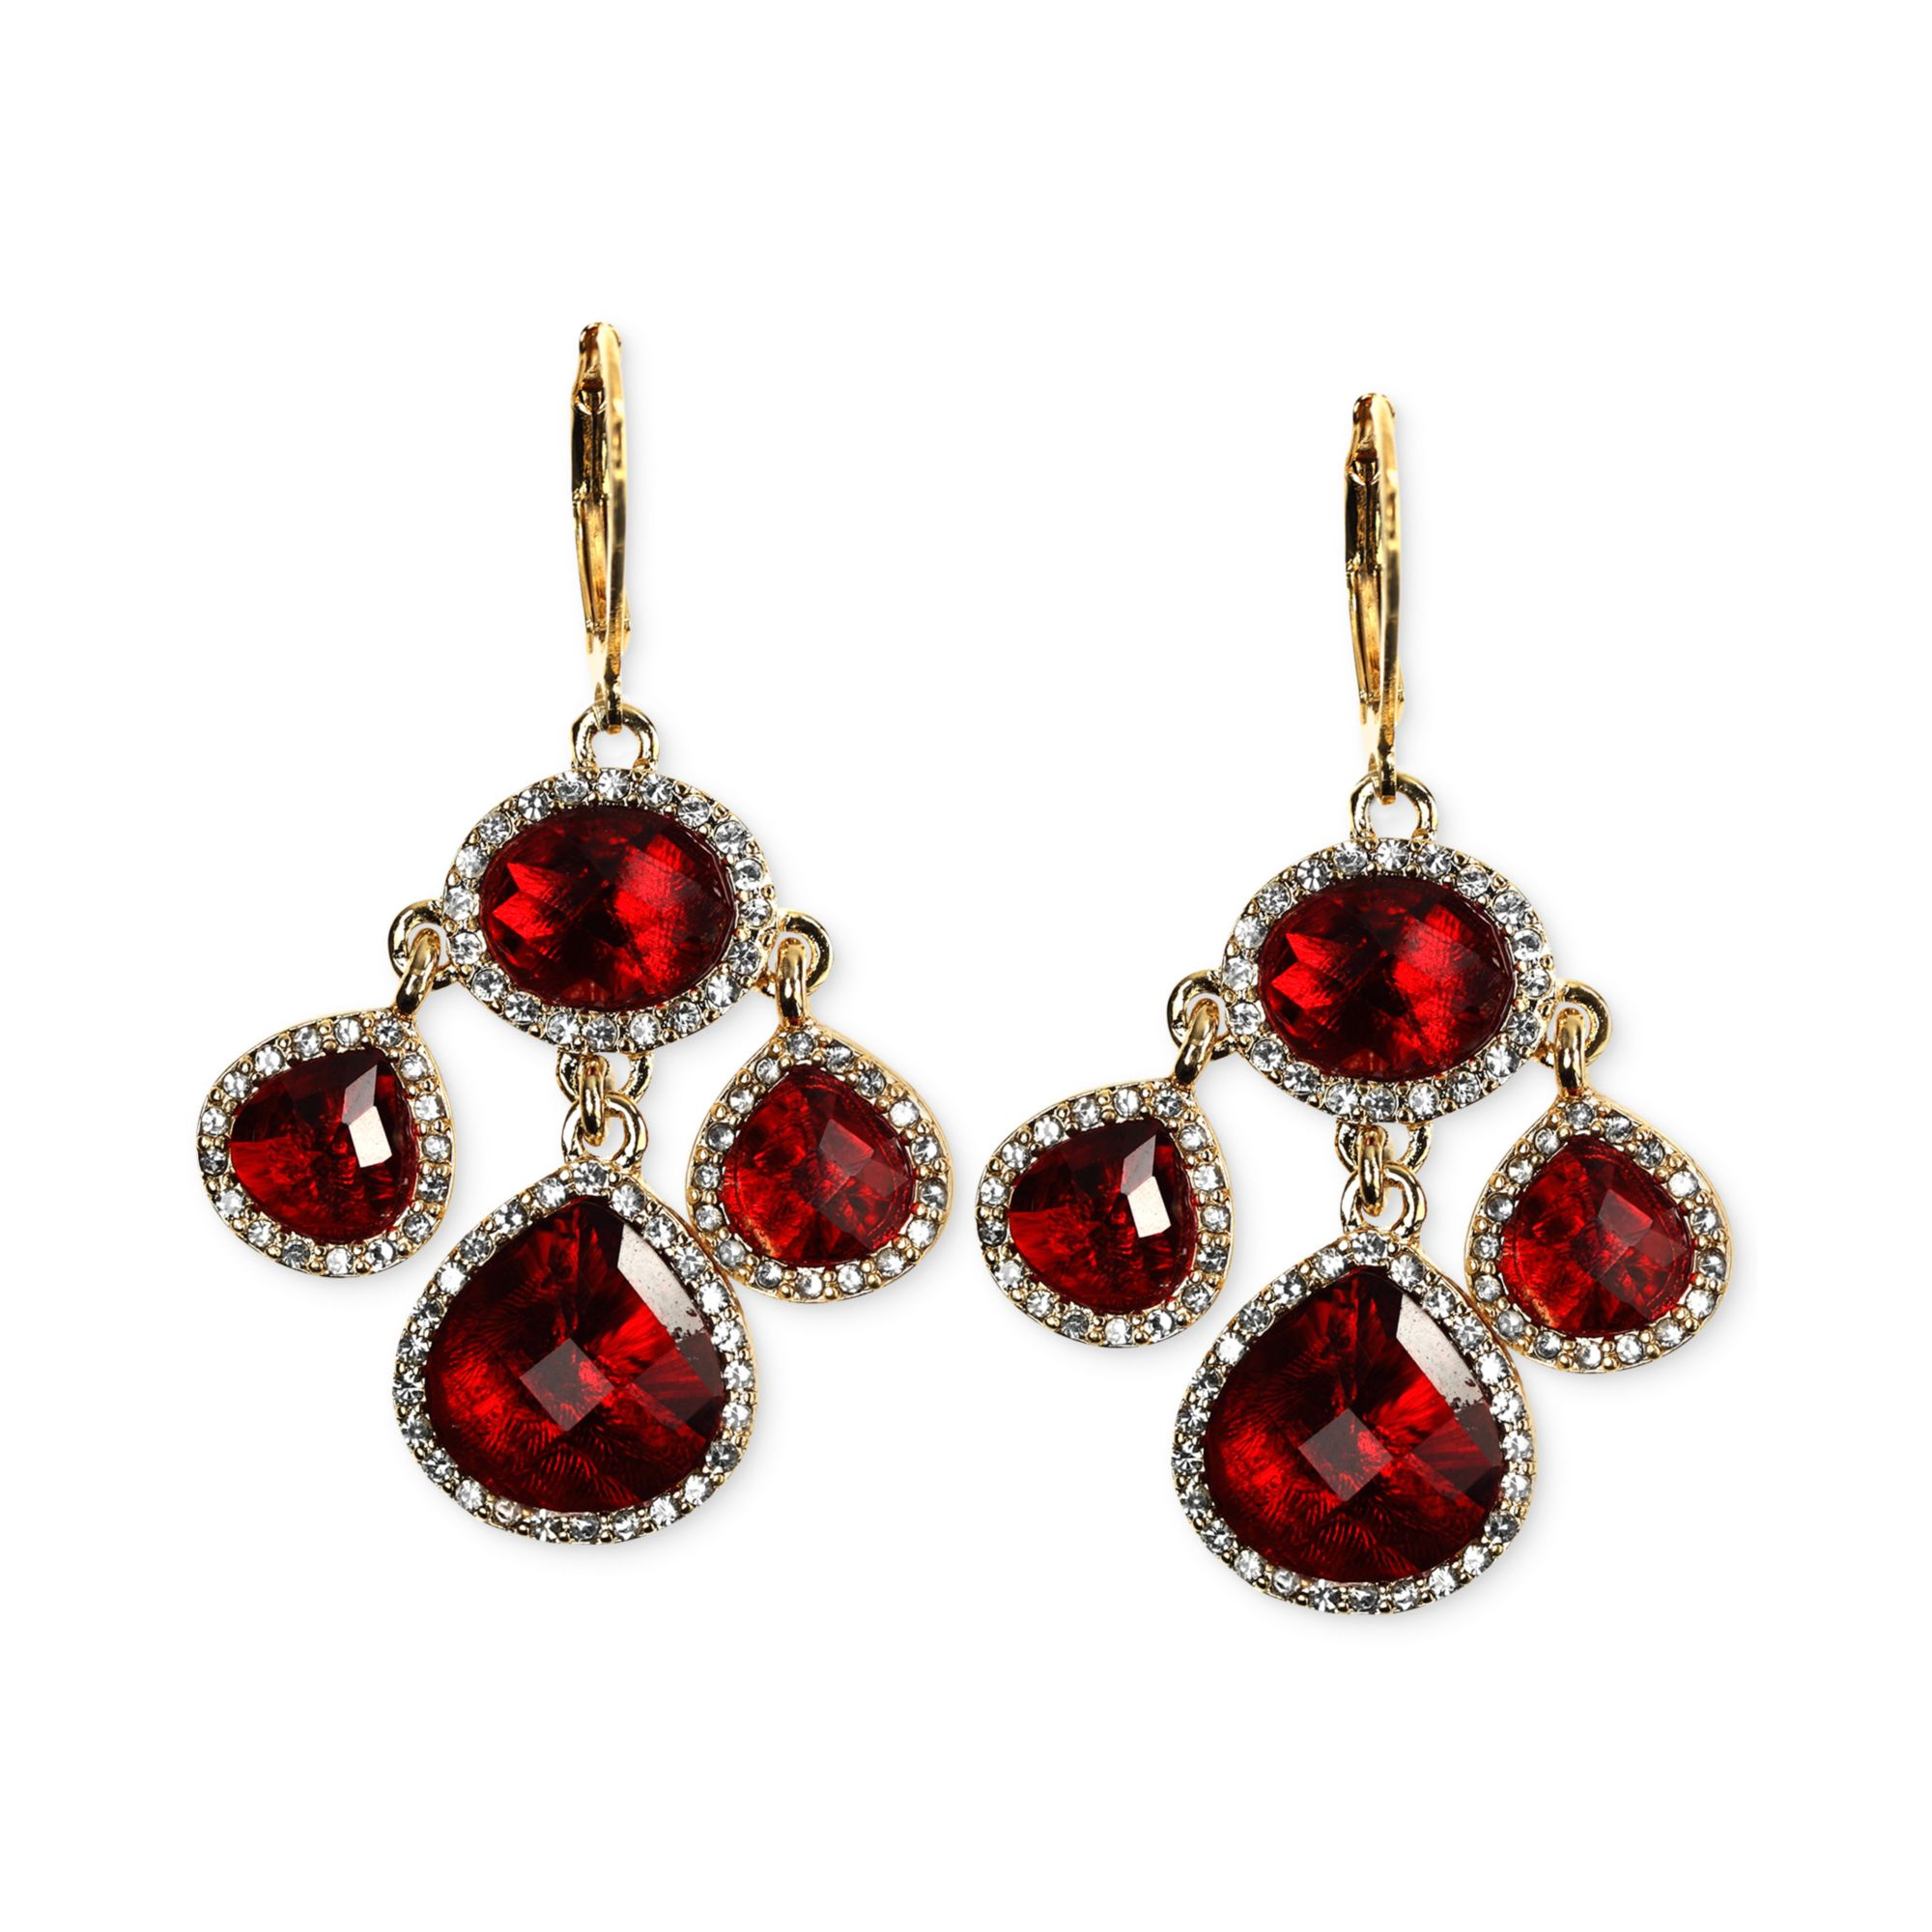 Red Givenchy Chandelier Earrings: Anne Klein Goldtone Siam Stone And Crystal Pave Chandelier